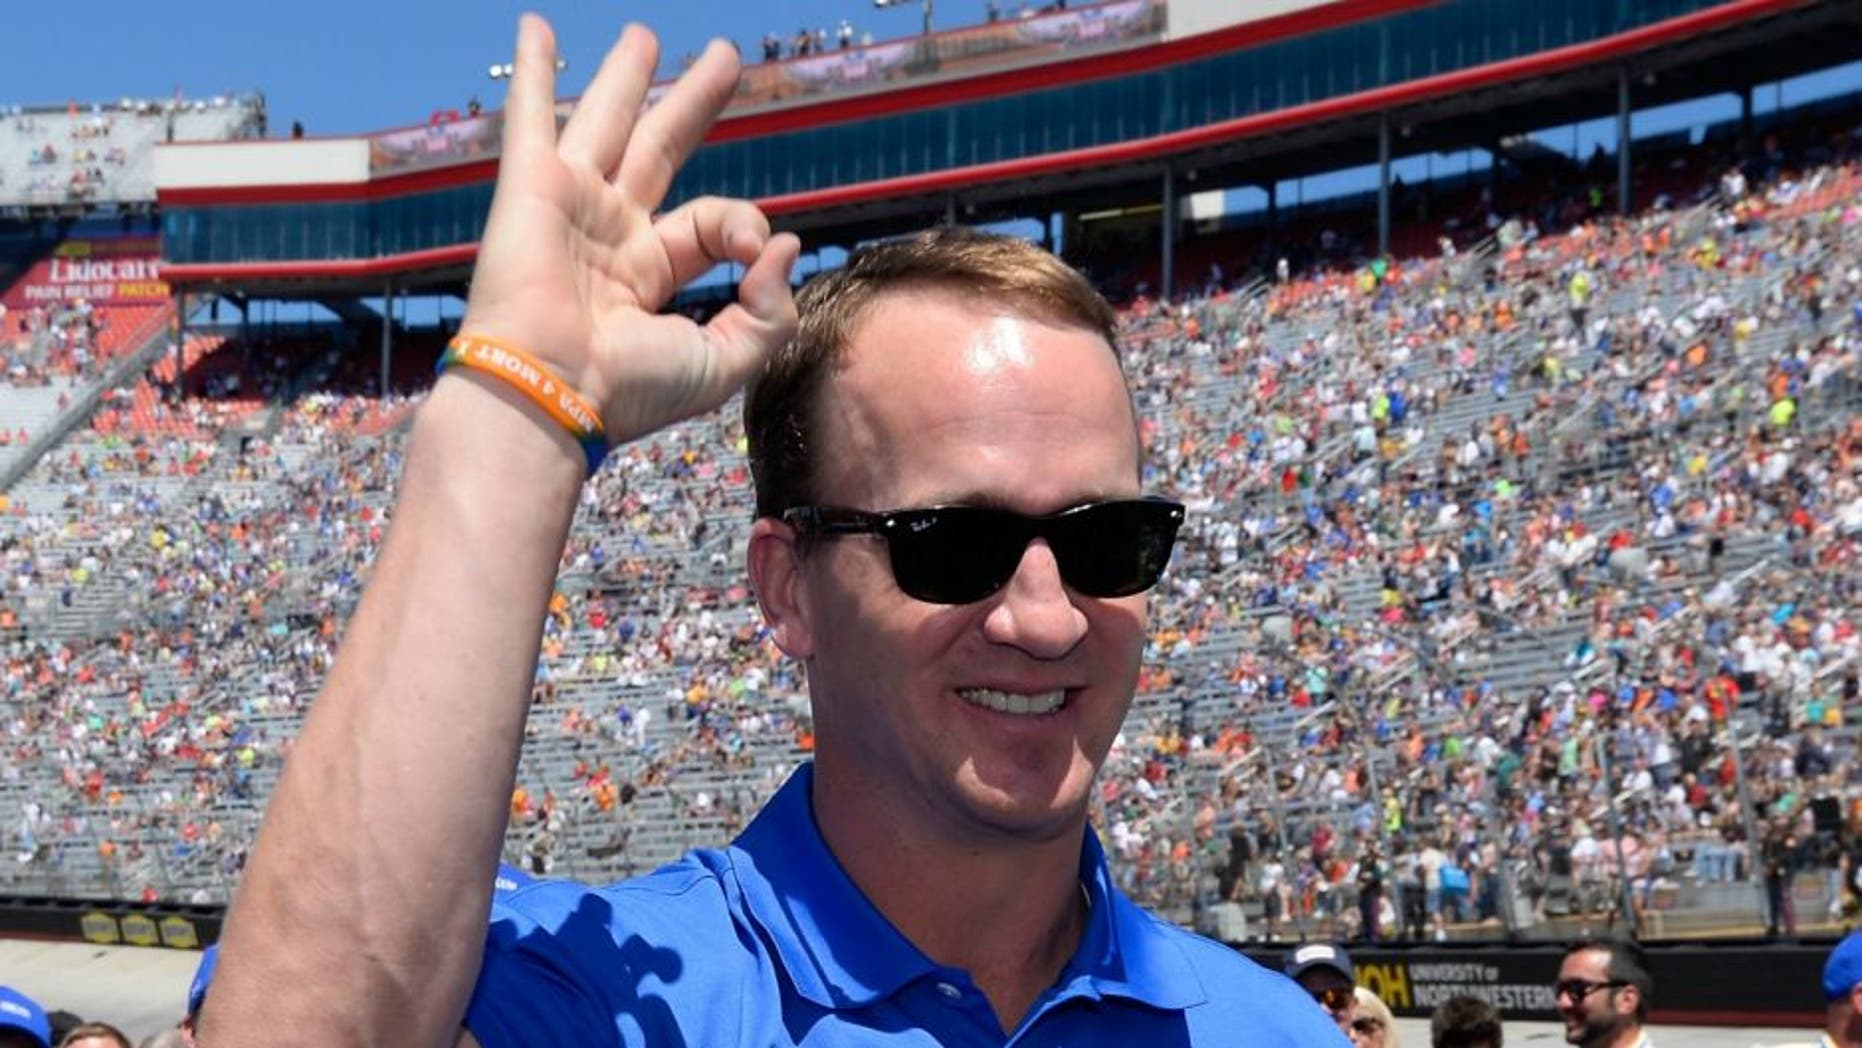 during the NASCAR Sprint Cup Series Food City 500 at Bristol Motor Speedway on April 17, 2016 in Bristol, Tennessee.,BRISTOL, TN - APRIL 17: Former NFL quarterback, Peyton Manning stands on the grid prior to the NASCAR Sprint Cup Series Food City 500 at Bristol Motor Speedway on April 17, 2016 in Bristol, Tennessee. (Photo by Robert Laberge/Getty Images)